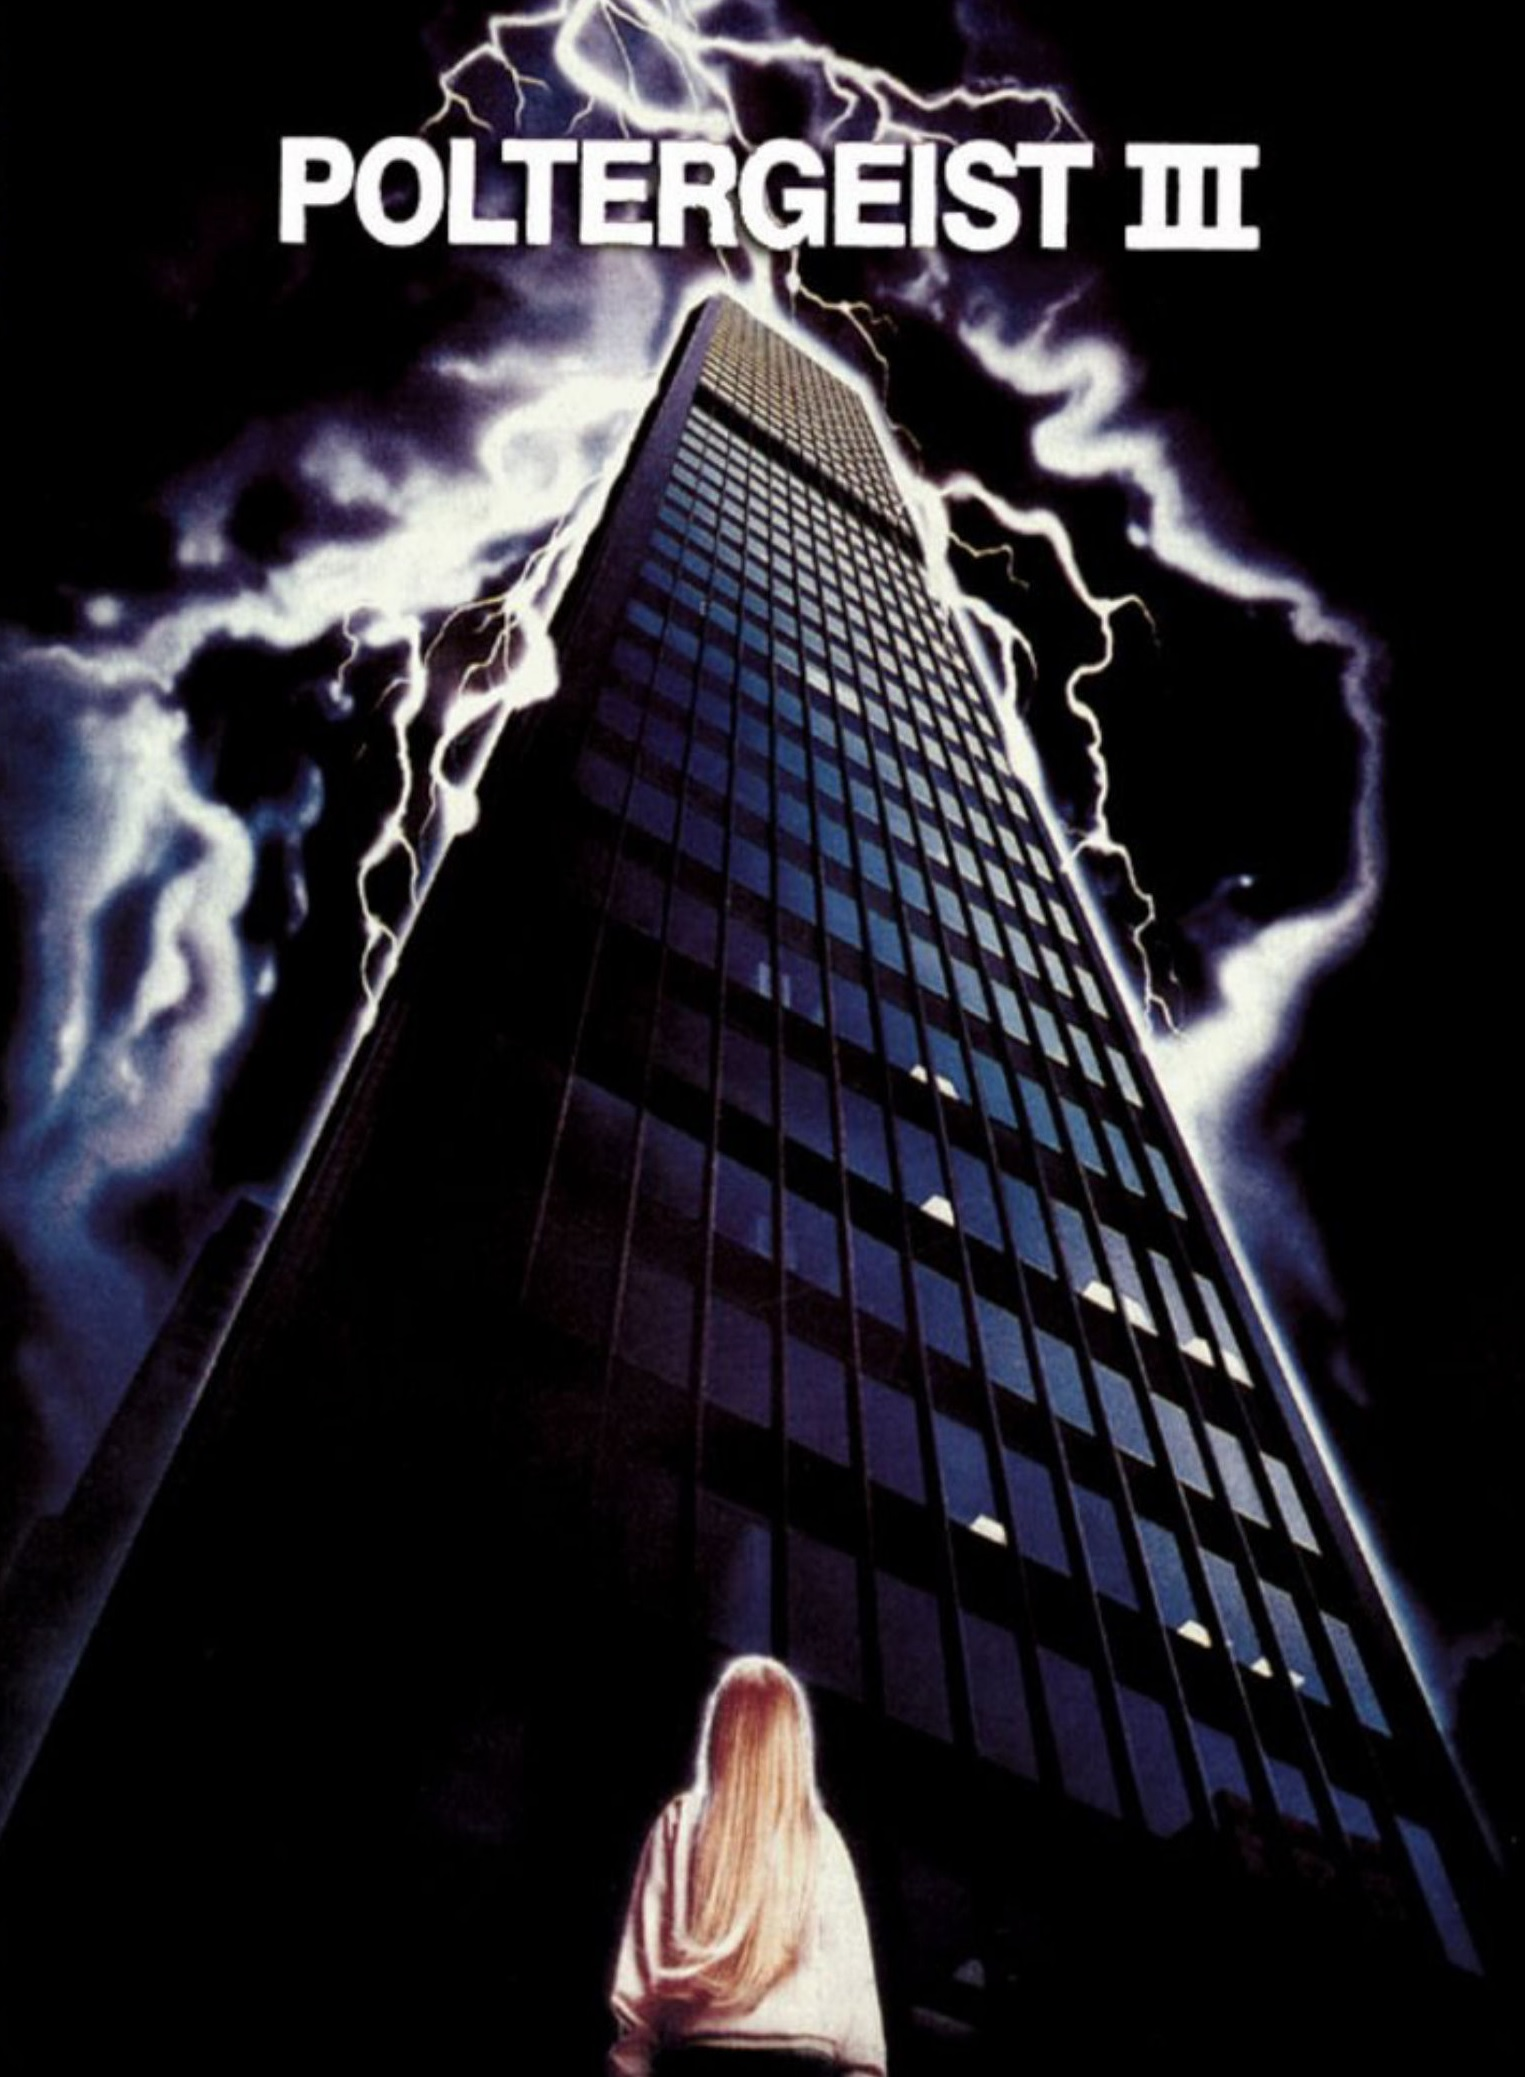 Poltergeist 3 review